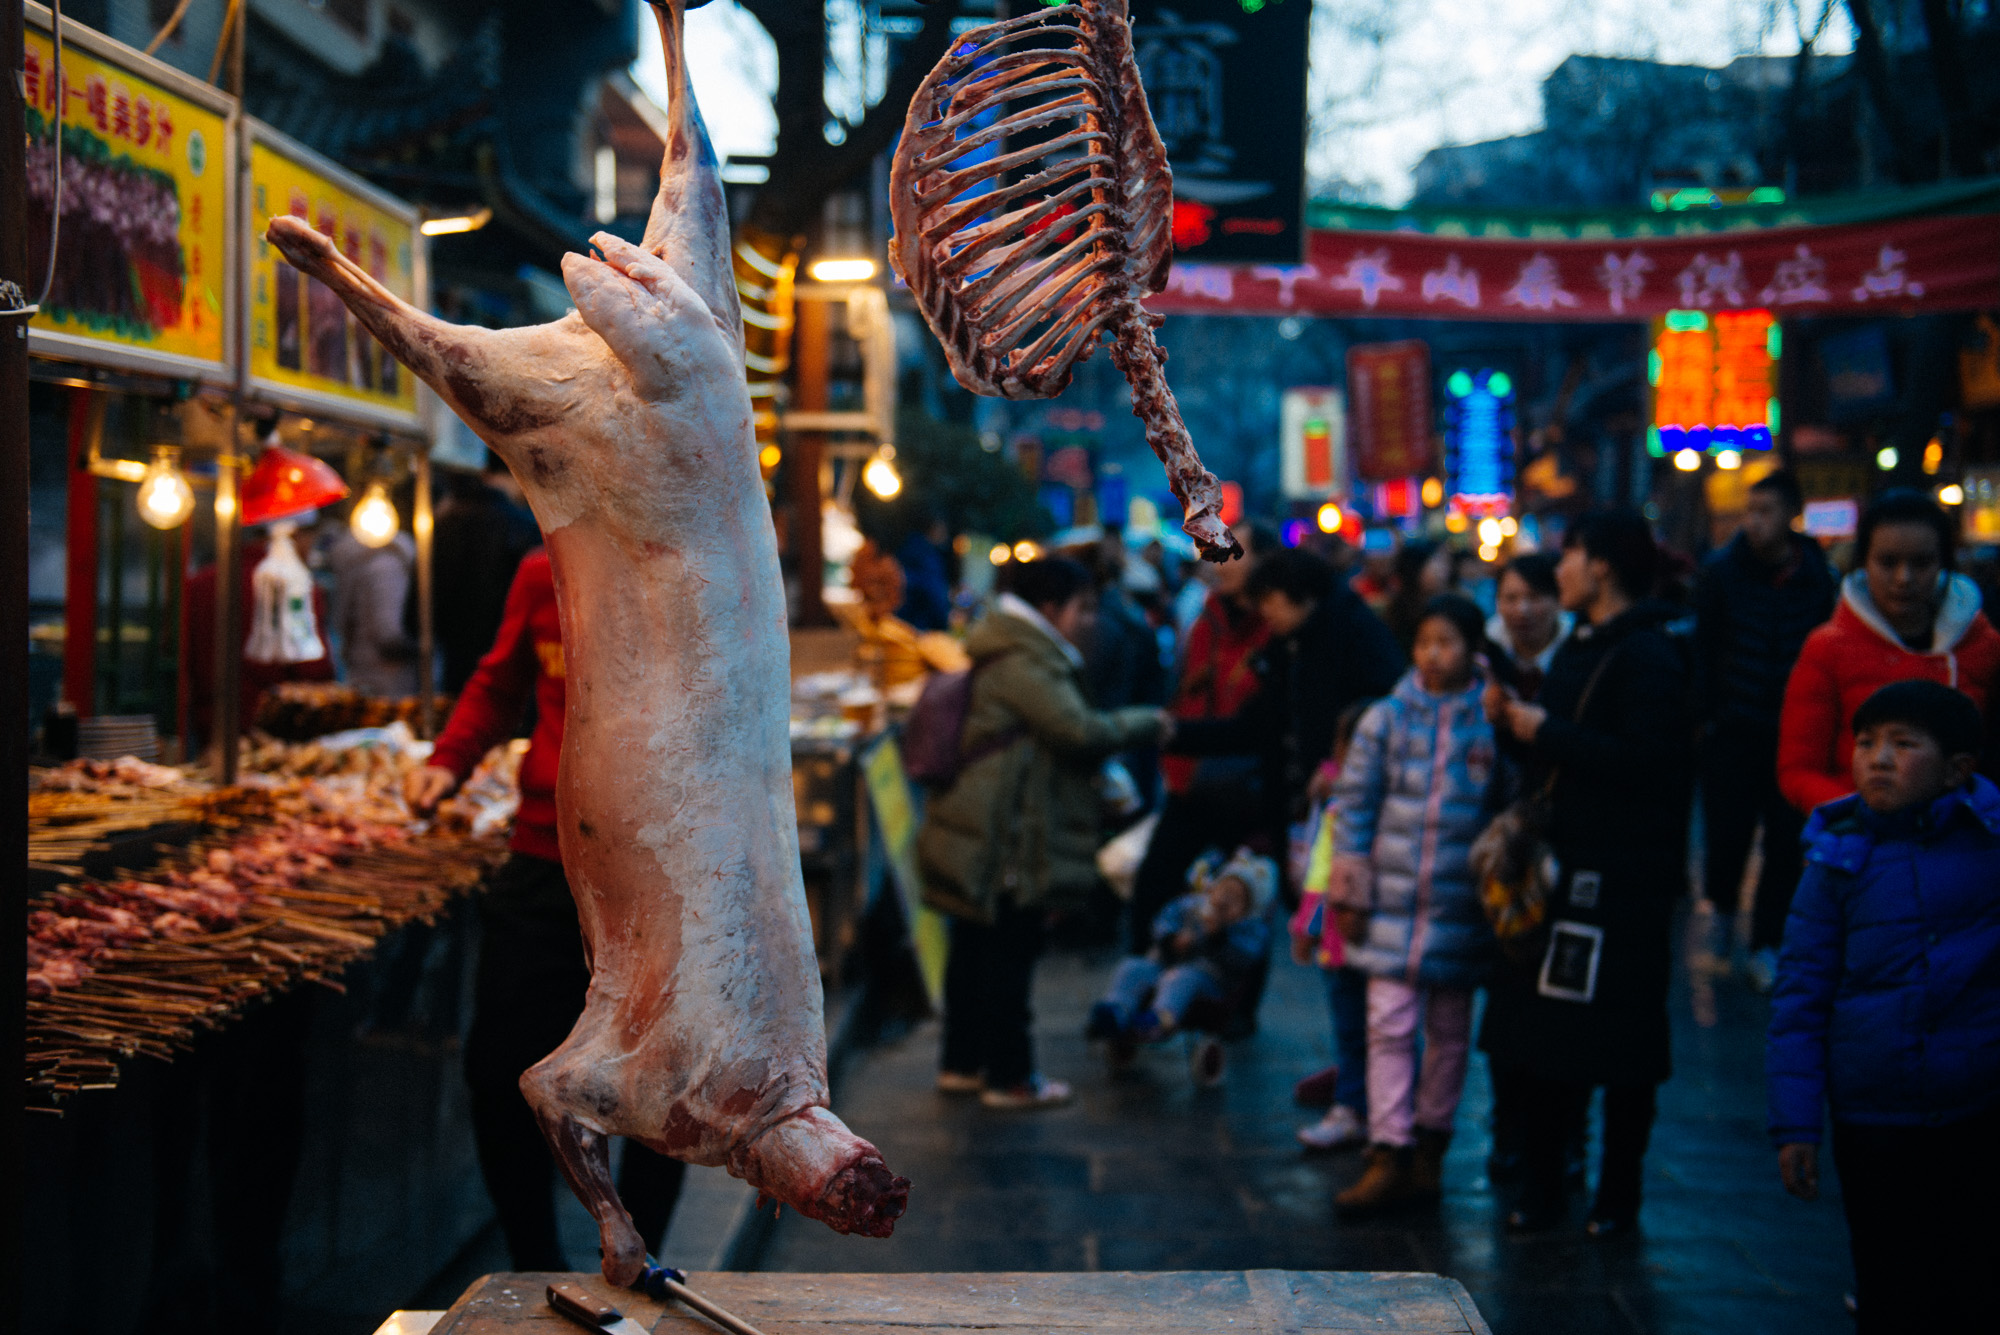 An animal (sheep I hope (?!)) is skinned and butchered right beside the skewer stand it will later be barbecued and sold. Even for the Chinese this was at least a bit unusual. Many would stop and pose with the carcass for a selfie (hey, look! It's me and a headless sheep! so a-we-so-me!)or at least stare for a while. I bet if you did this in the US or Europe you'd be arrested.